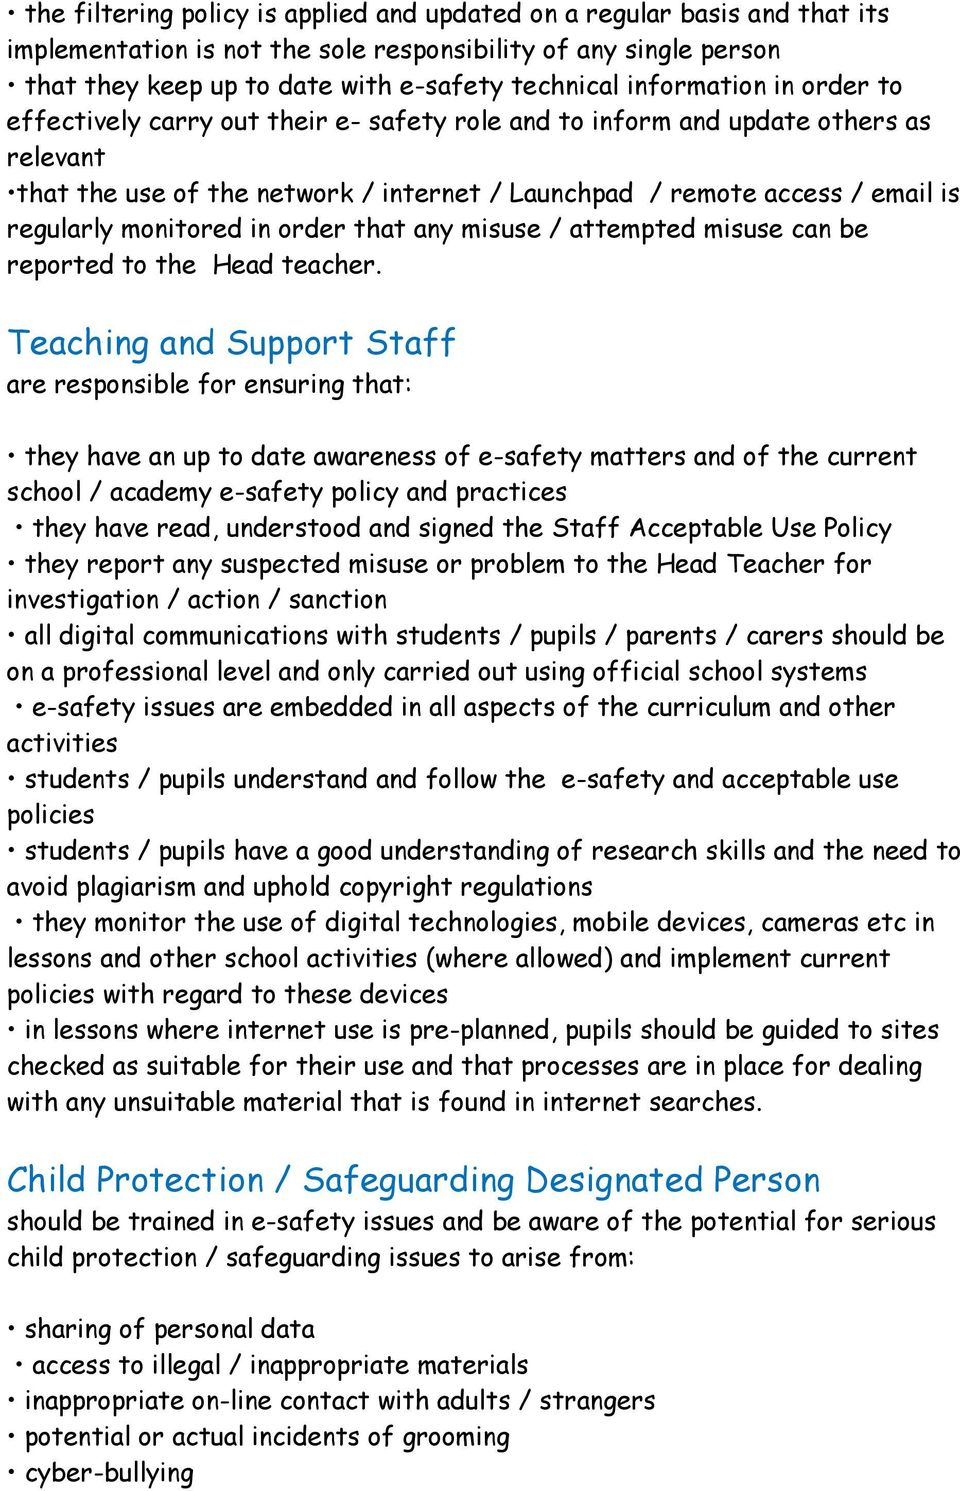 monitored in order that any misuse / attempted misuse can be reported to the Head teacher.